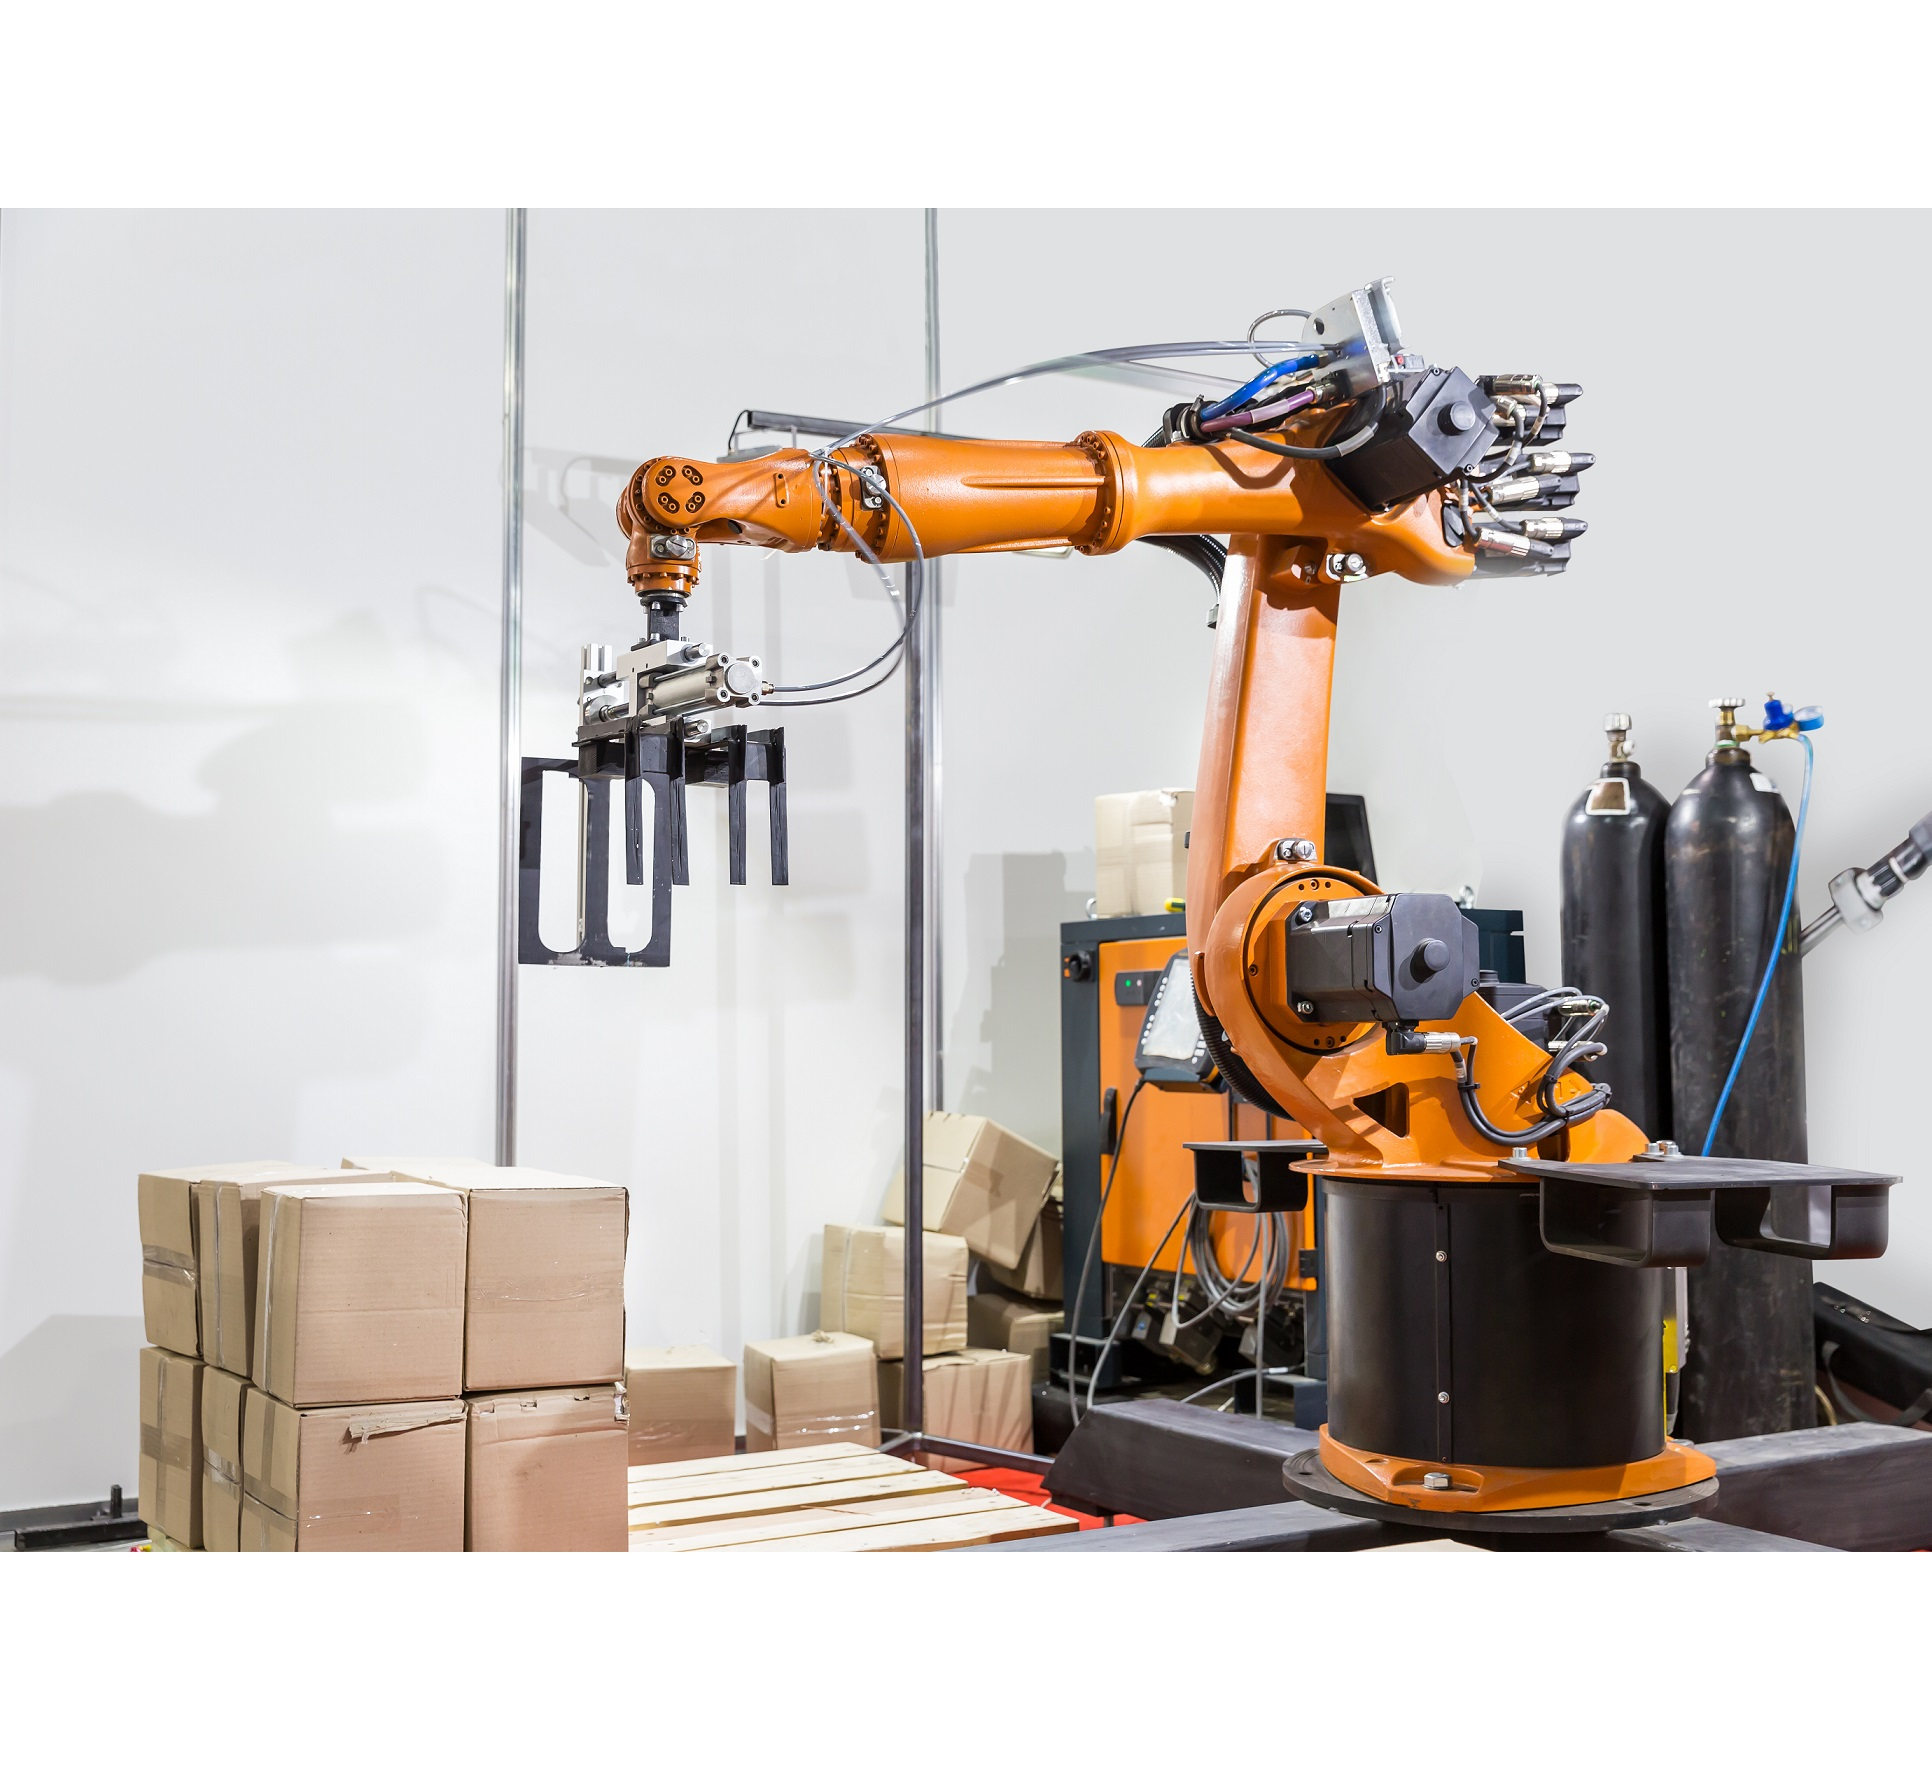 Why We Should Care About Smart Factory Security